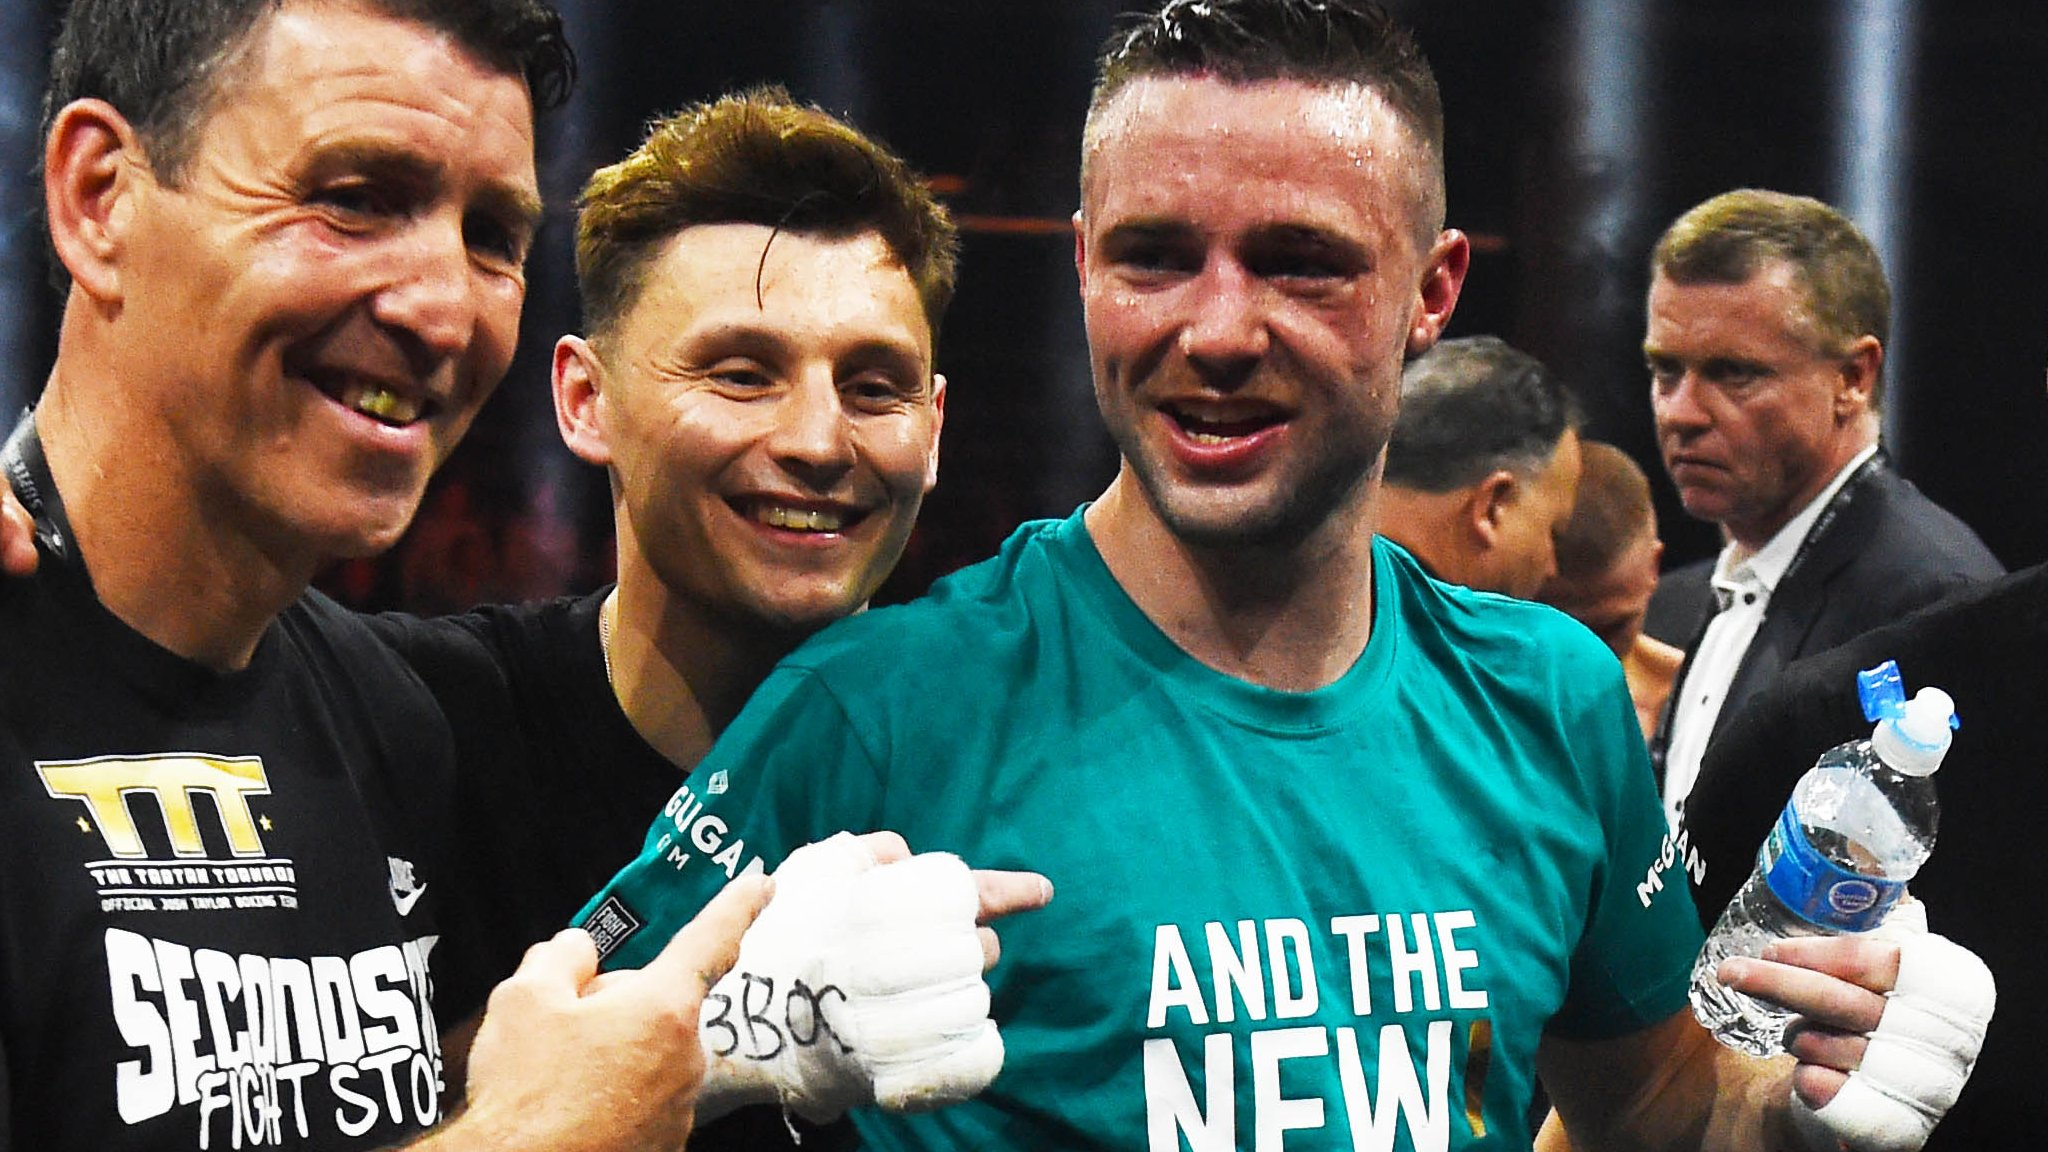 Josh Taylor 'not surprised I'm world champion' after beating holder Ivan Baranchyk